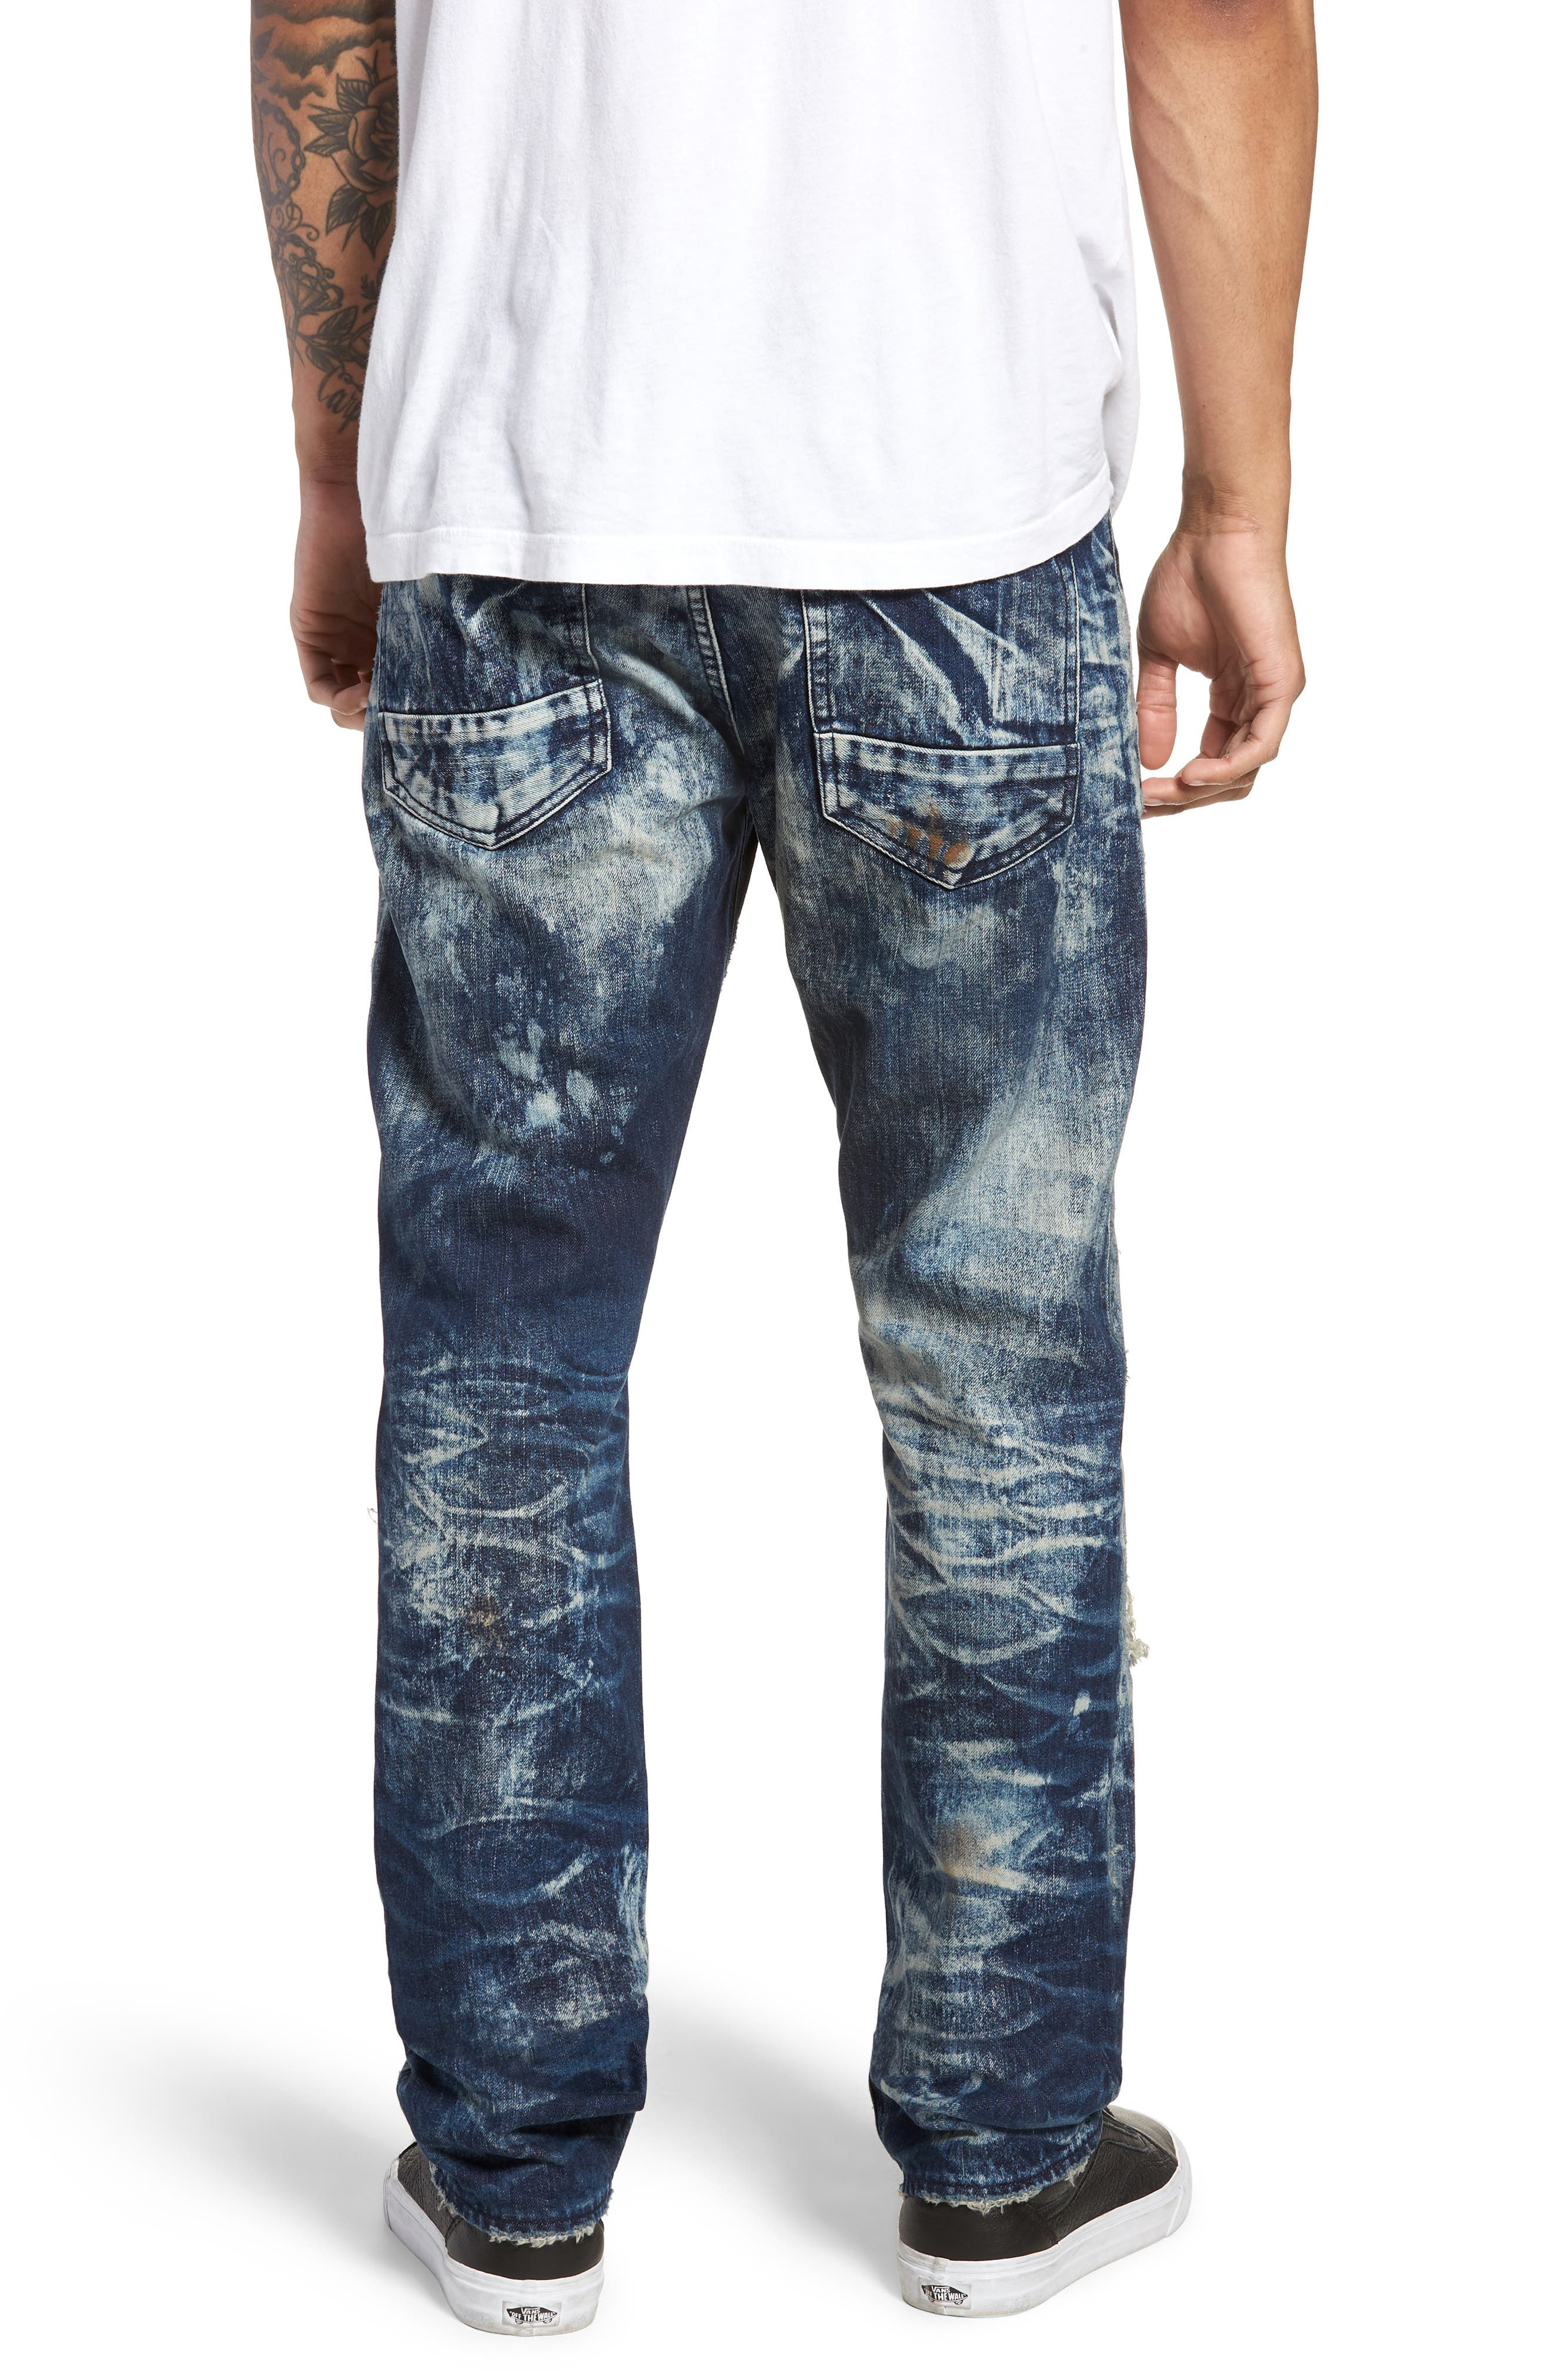 Le Sabre Slim Fit Jeans,                             Alternate thumbnail 2, color,                             Consolation